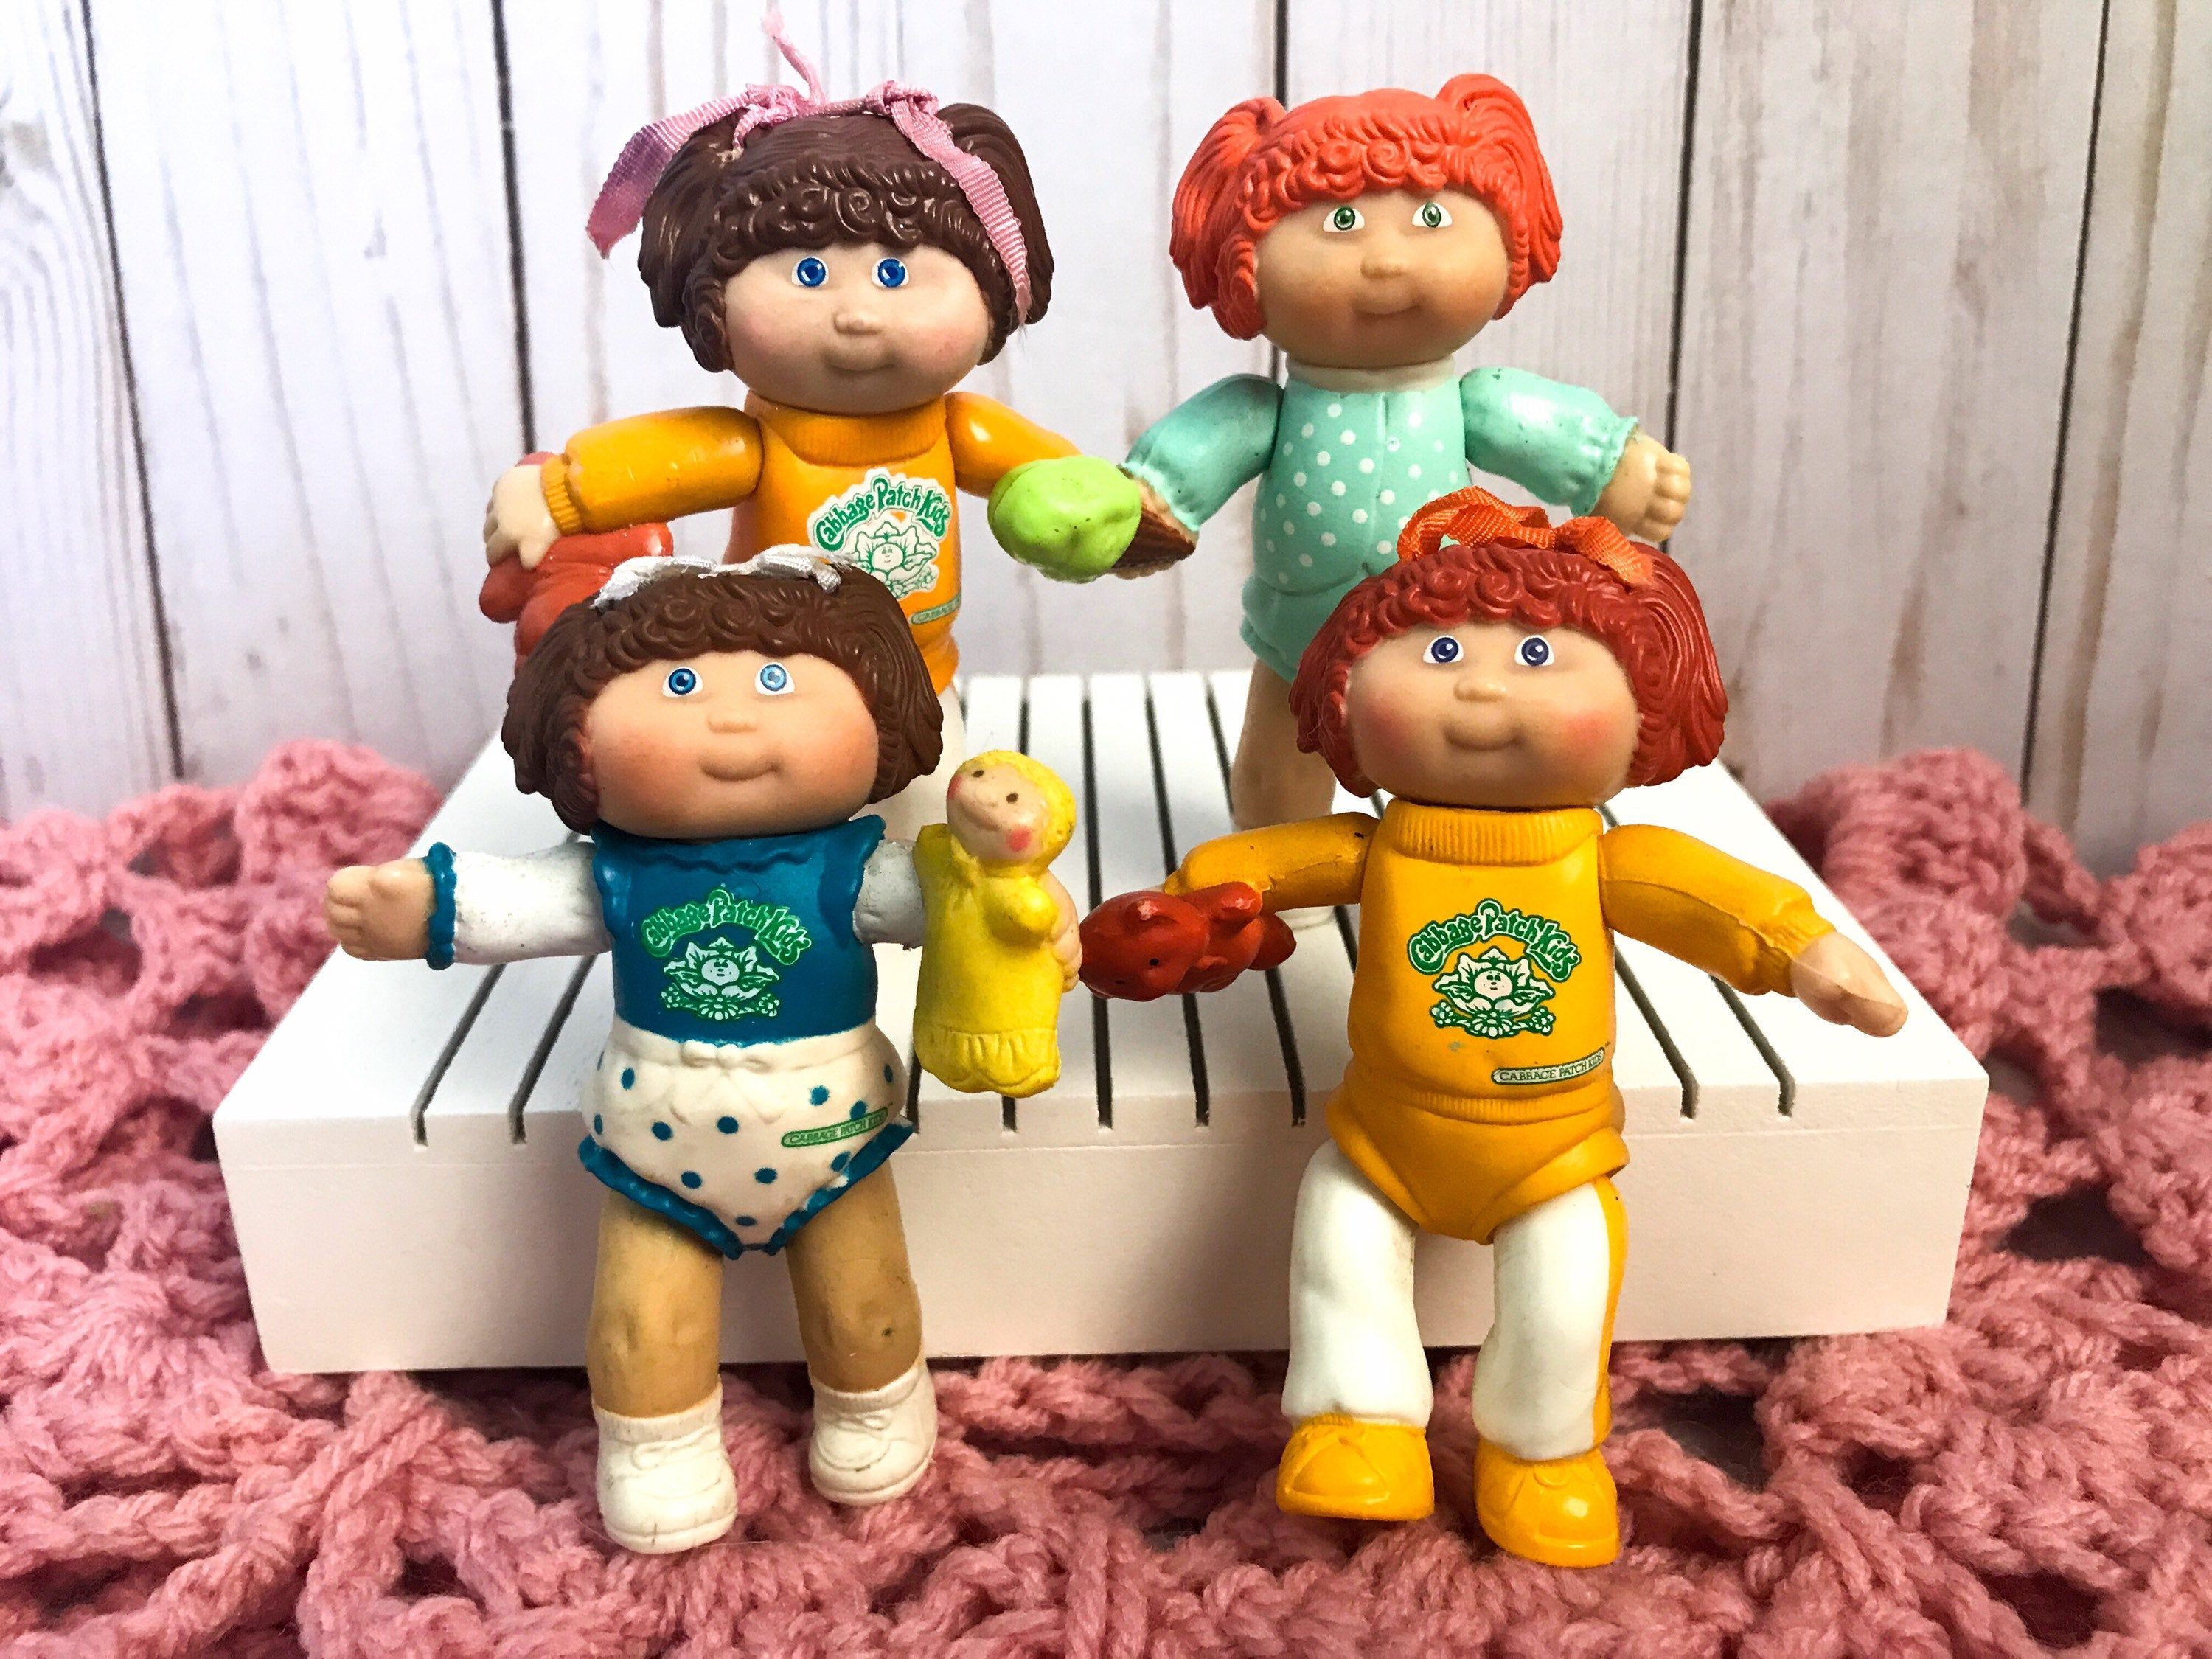 Cabbage Patch Kids Poseable Figures Baby Doll Vintage 80s Etsy In 2020 Cabbage Patch Kids Vintage Cabbage Patch Dolls Patch Kids